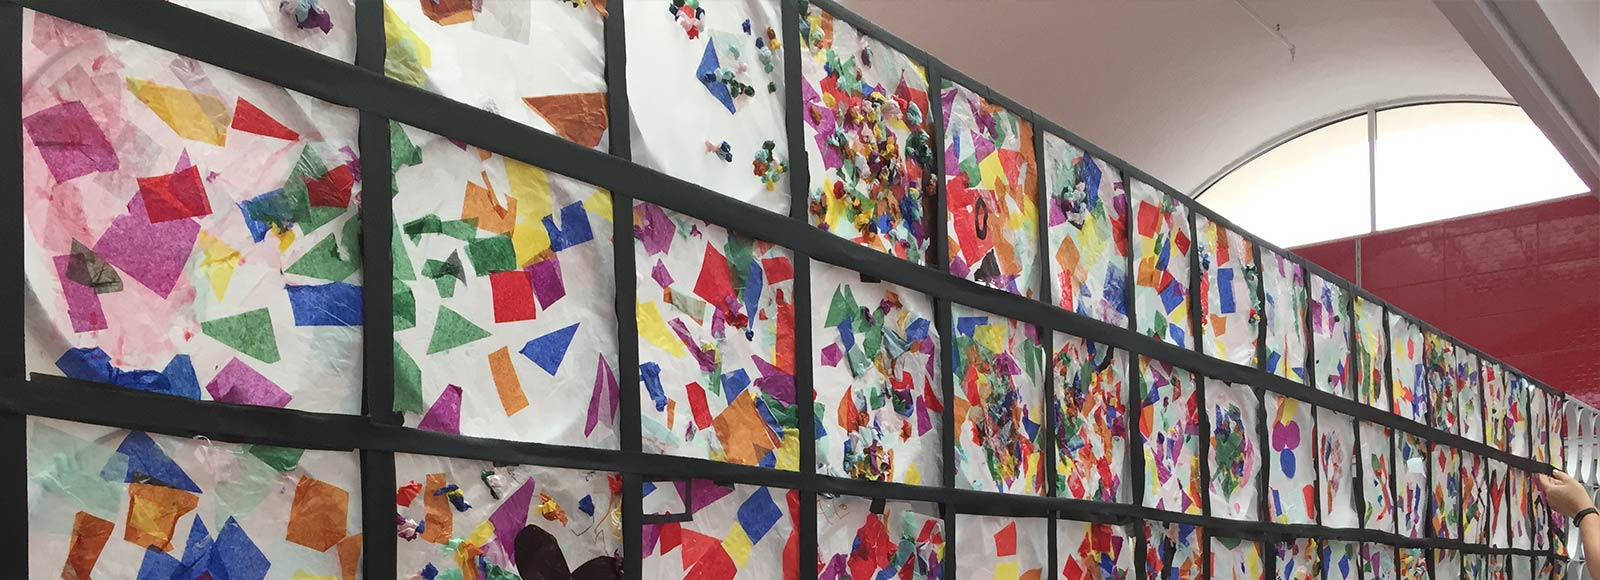 Marie Reed Elementary School children's art work wall display